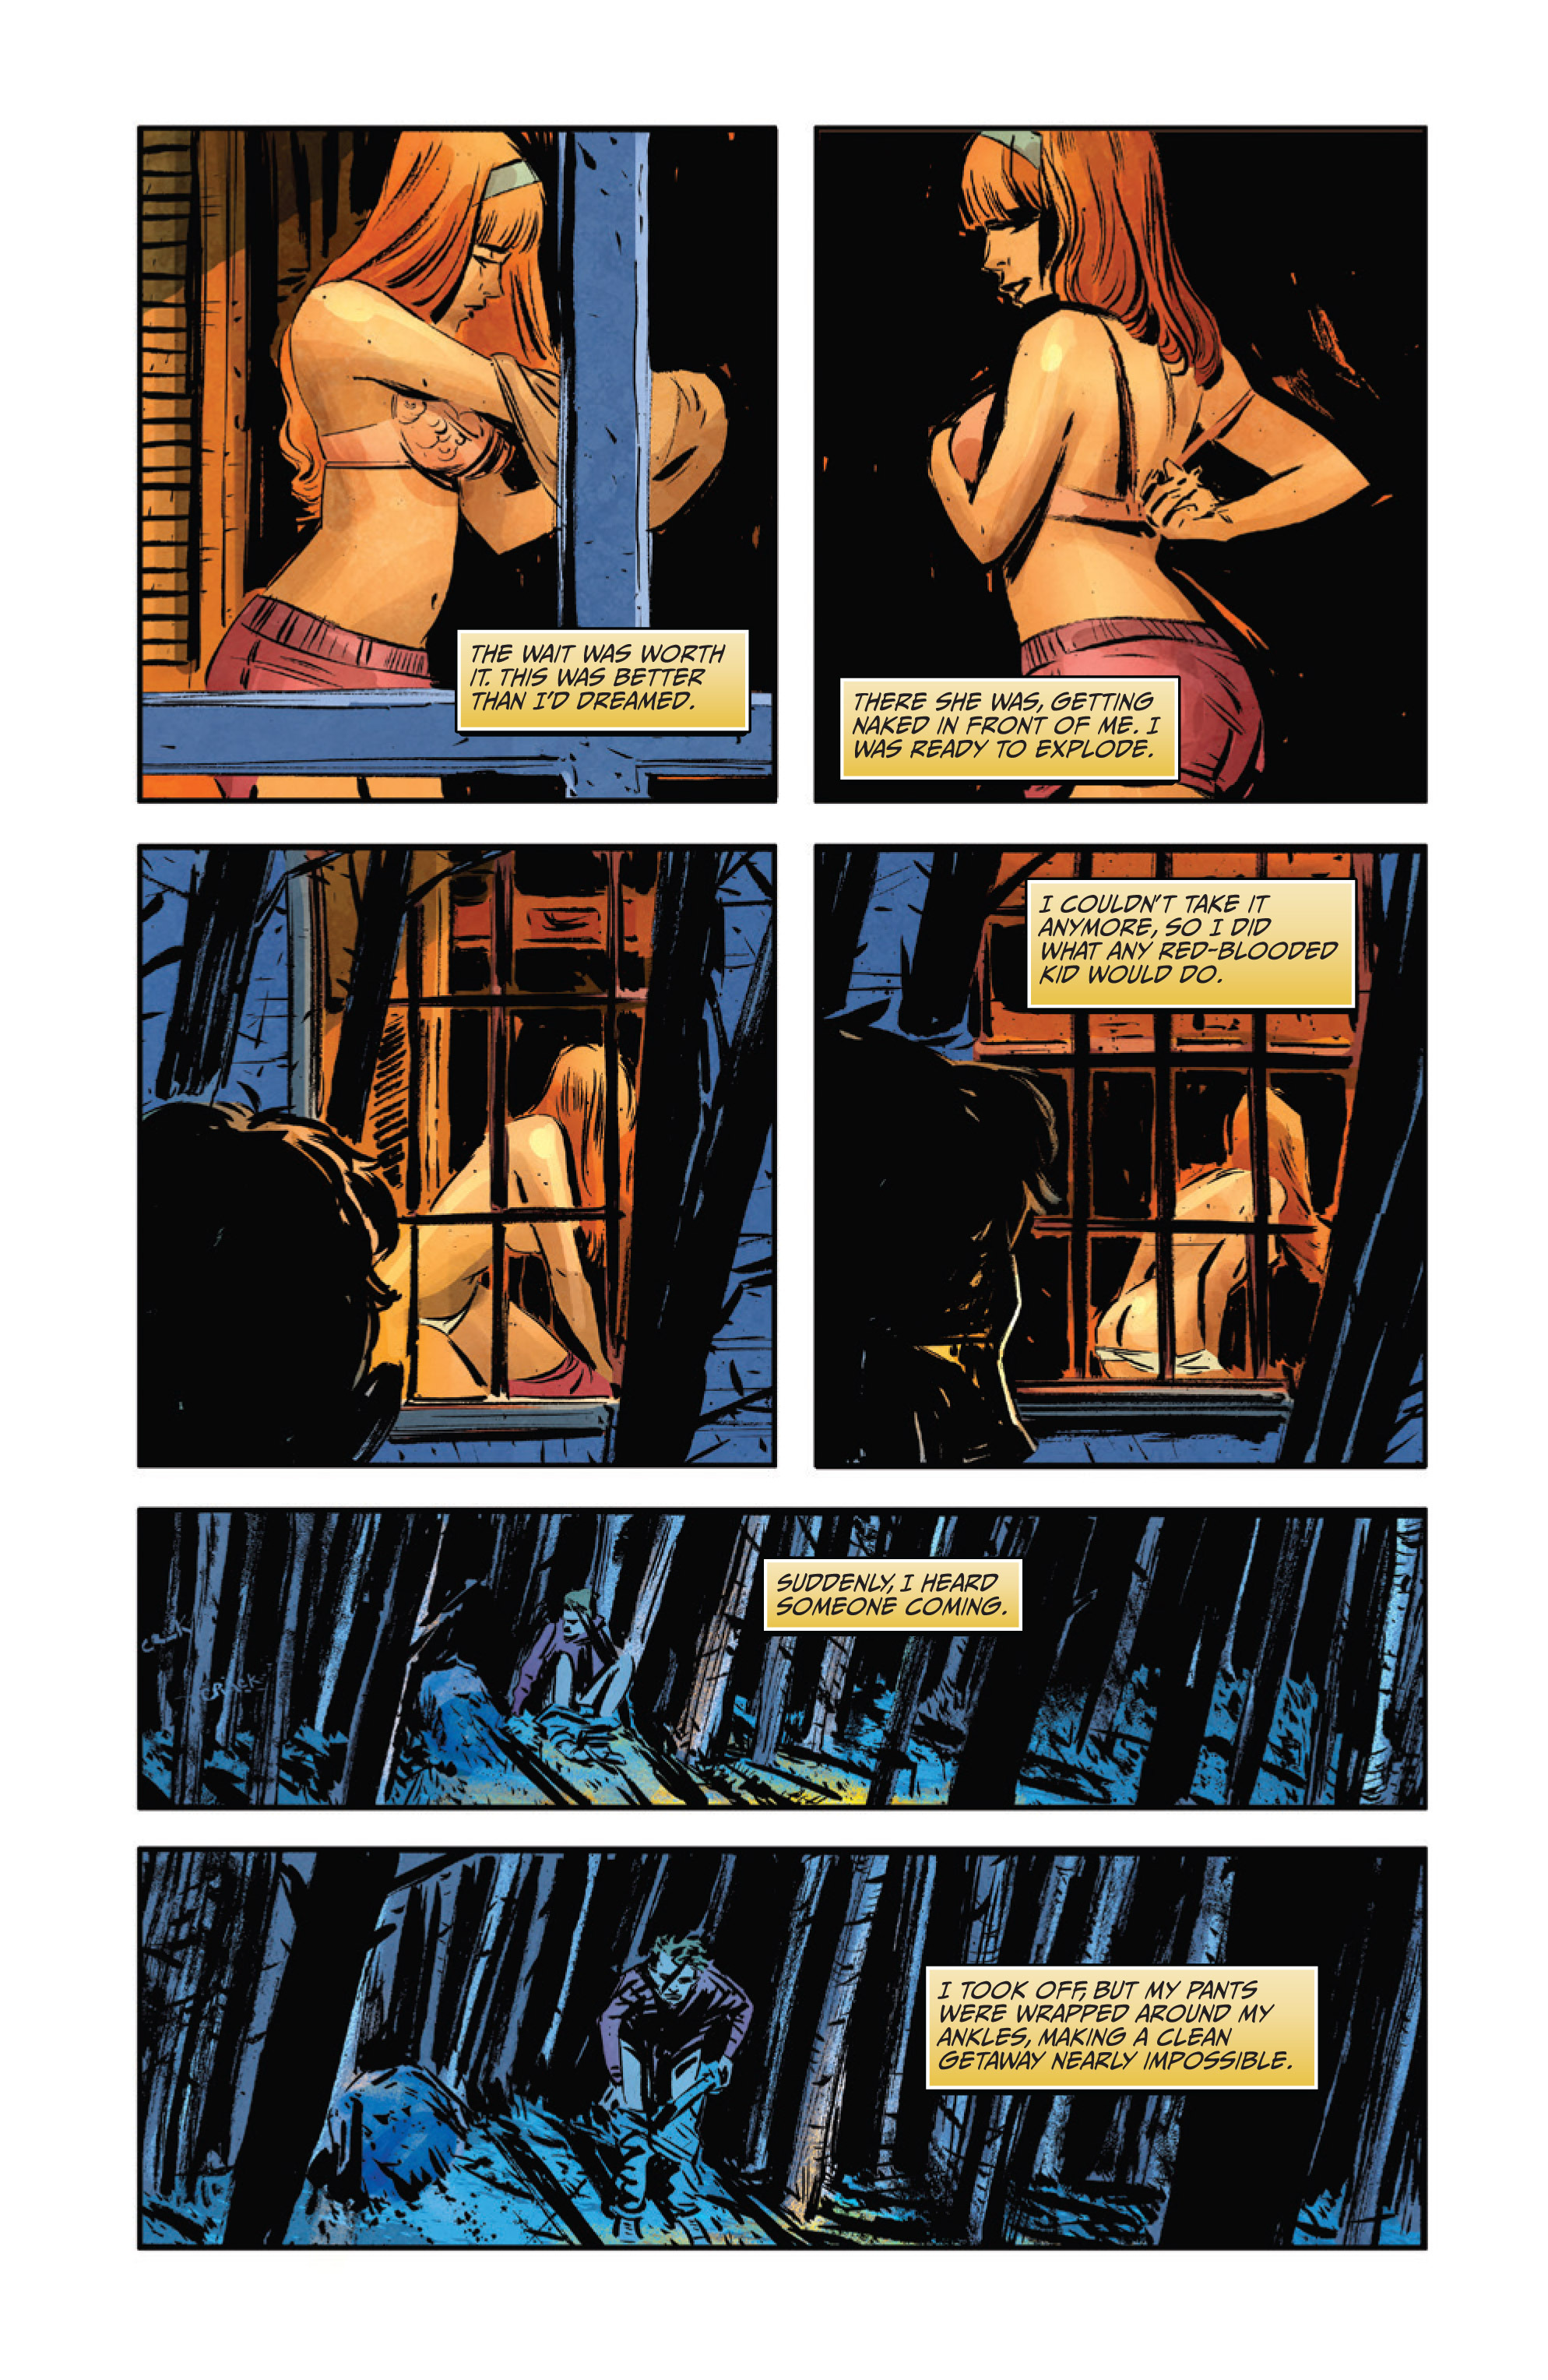 Read online Sex and Violence Vol. 2 comic -  Issue # Full - 48